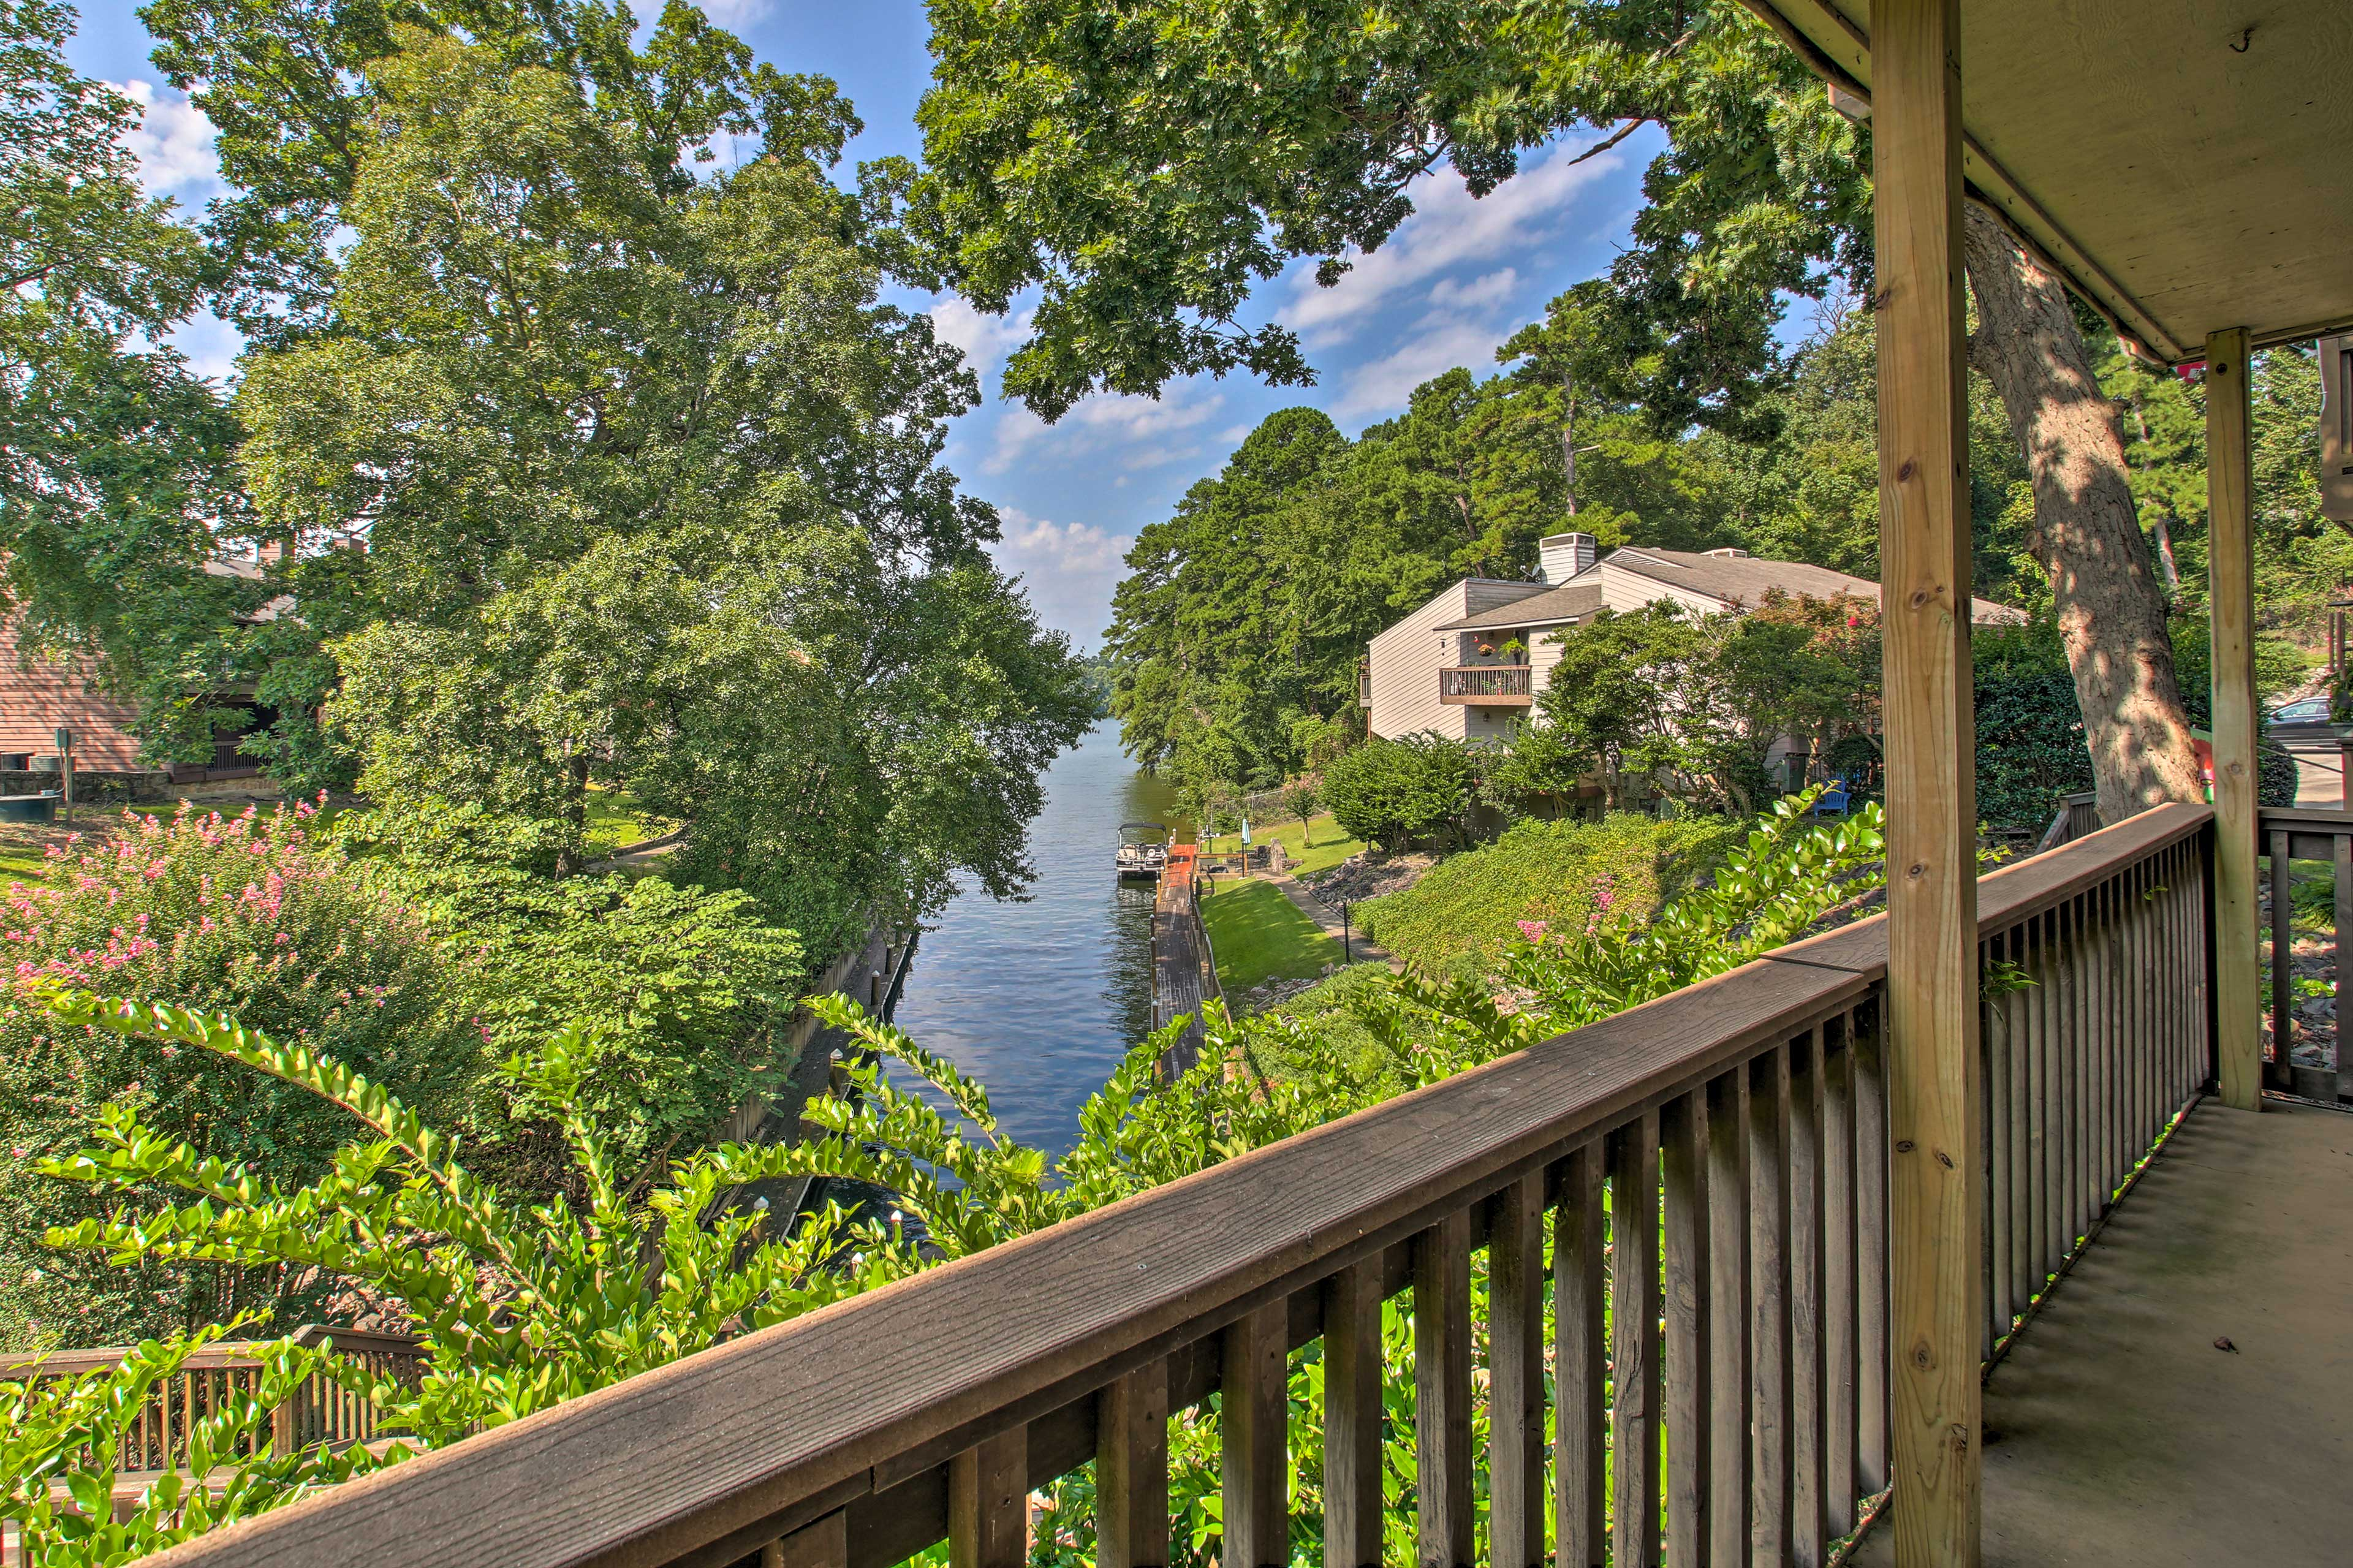 Sip your coffee while you lean against the banister and take in the view.